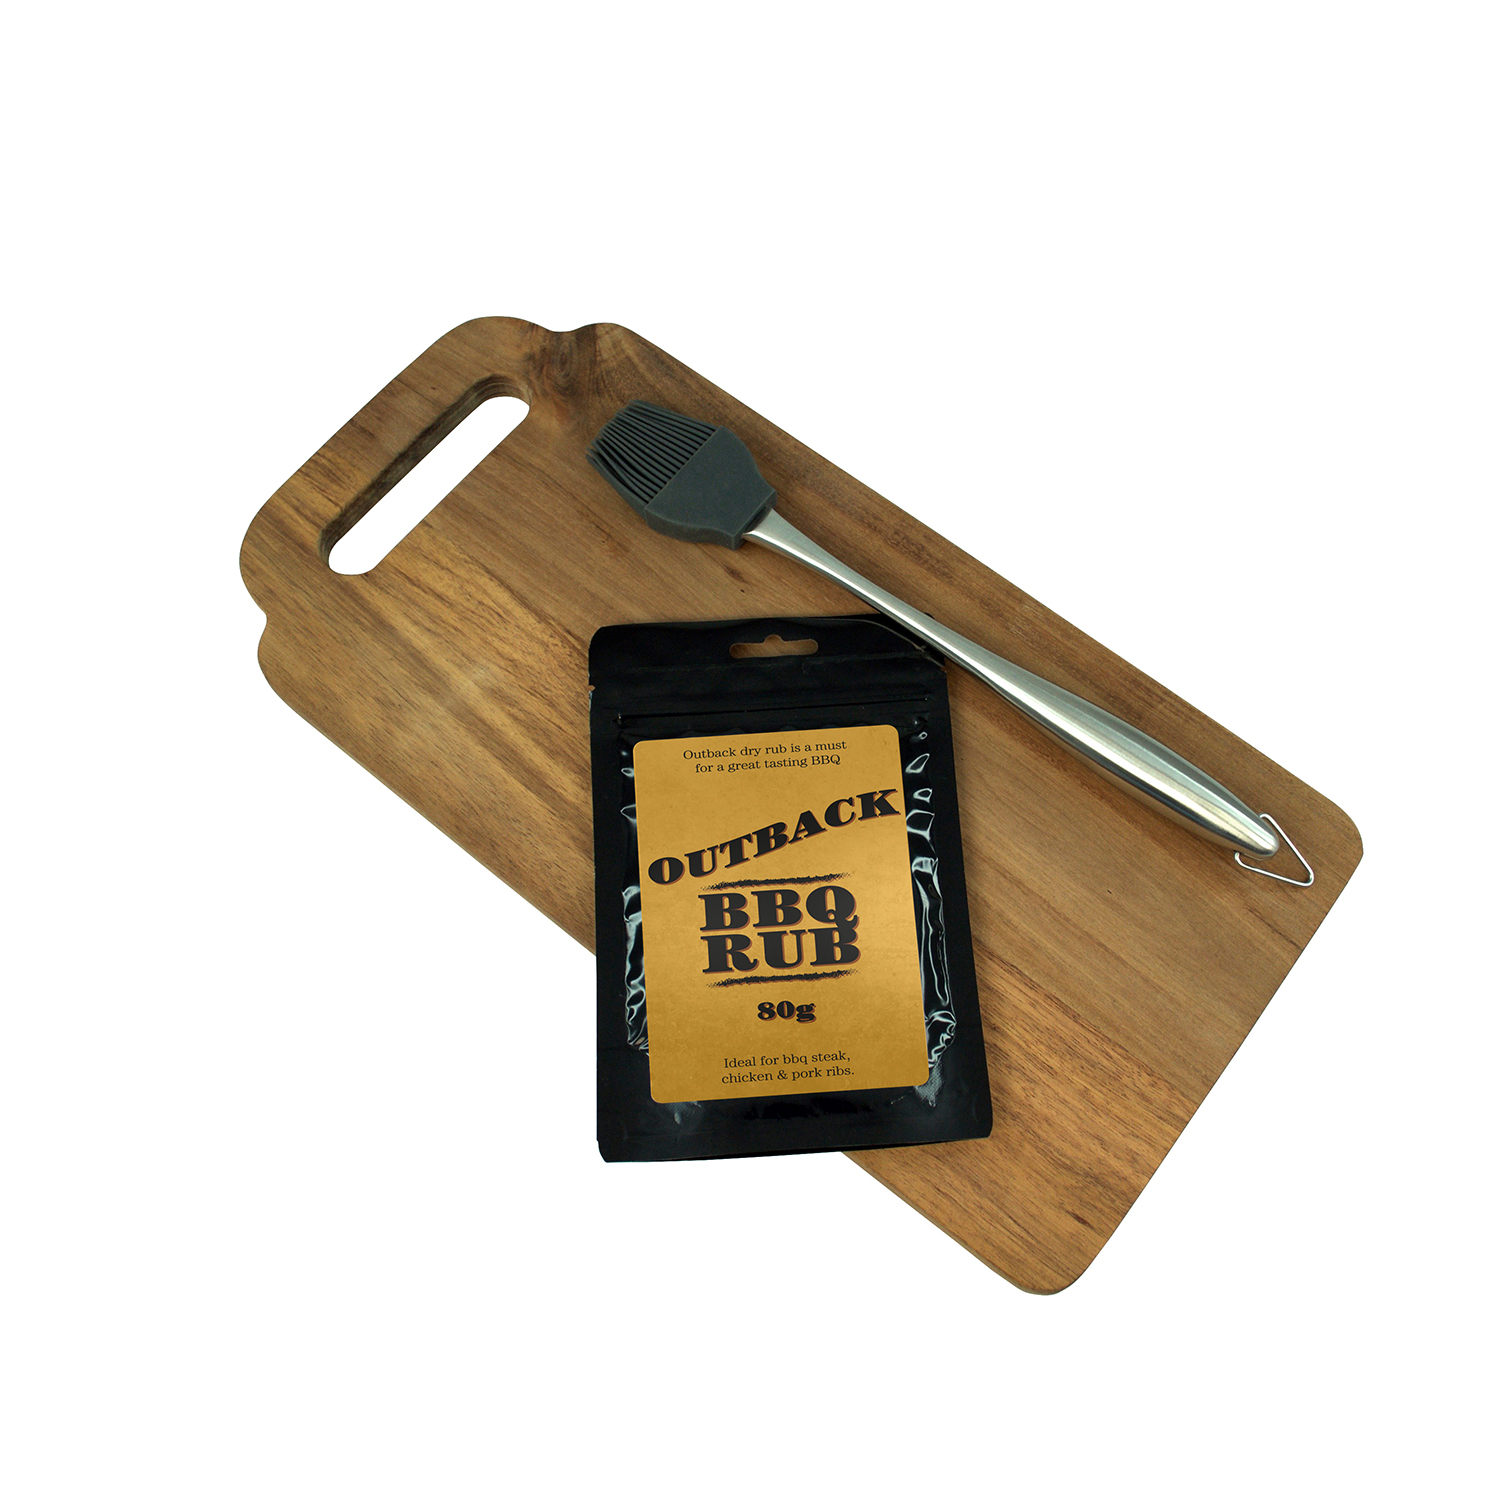 Promotional Product Outback Spice & Board Set